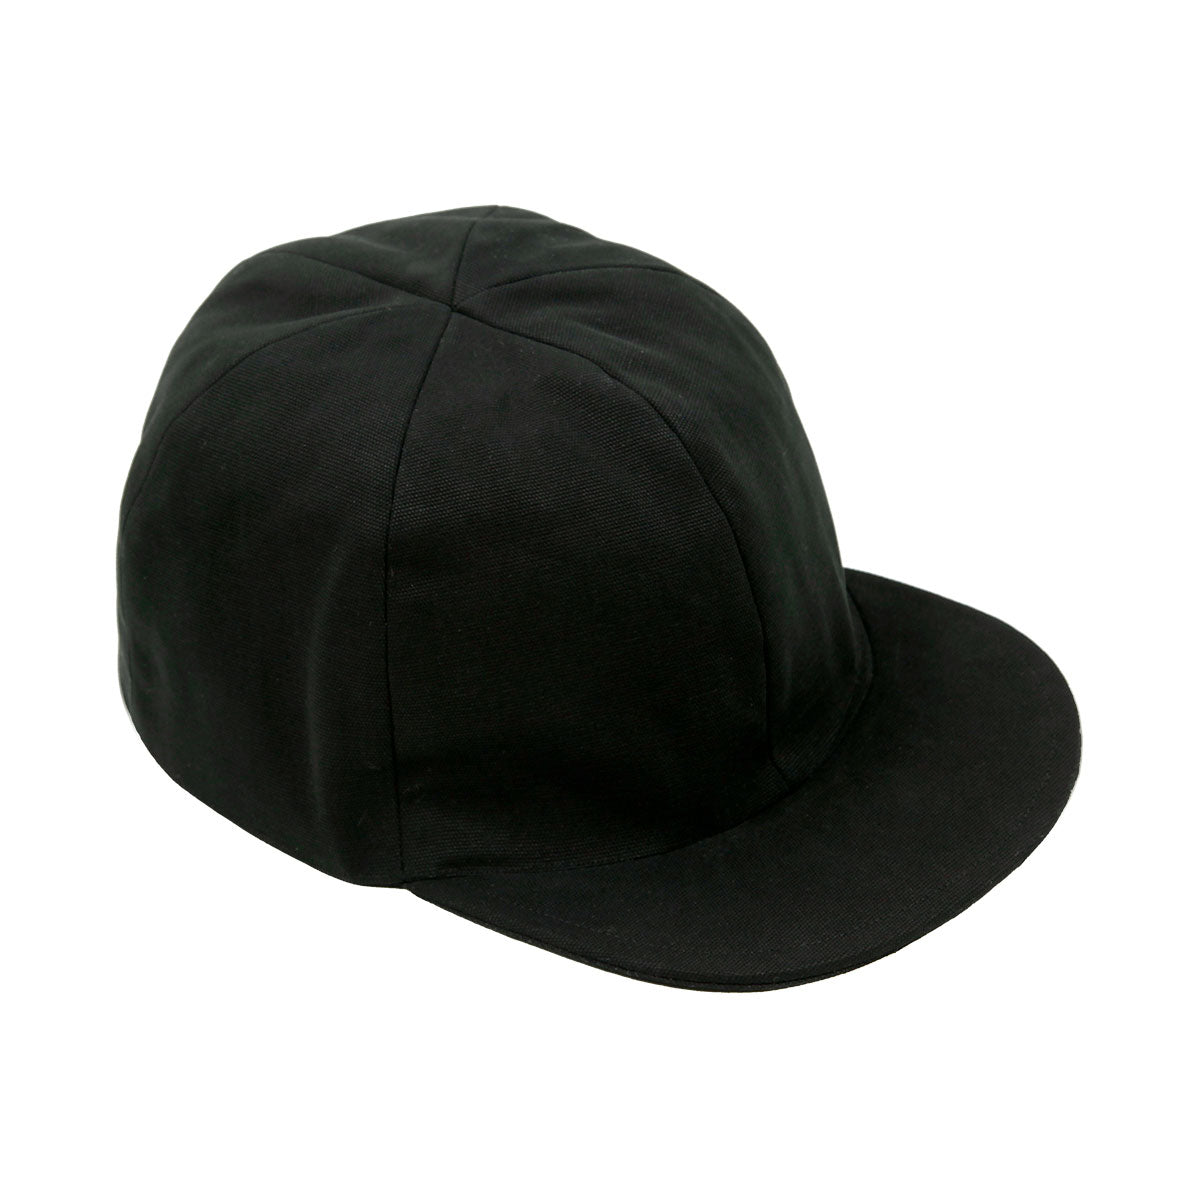 The Kendall Canvas Cap